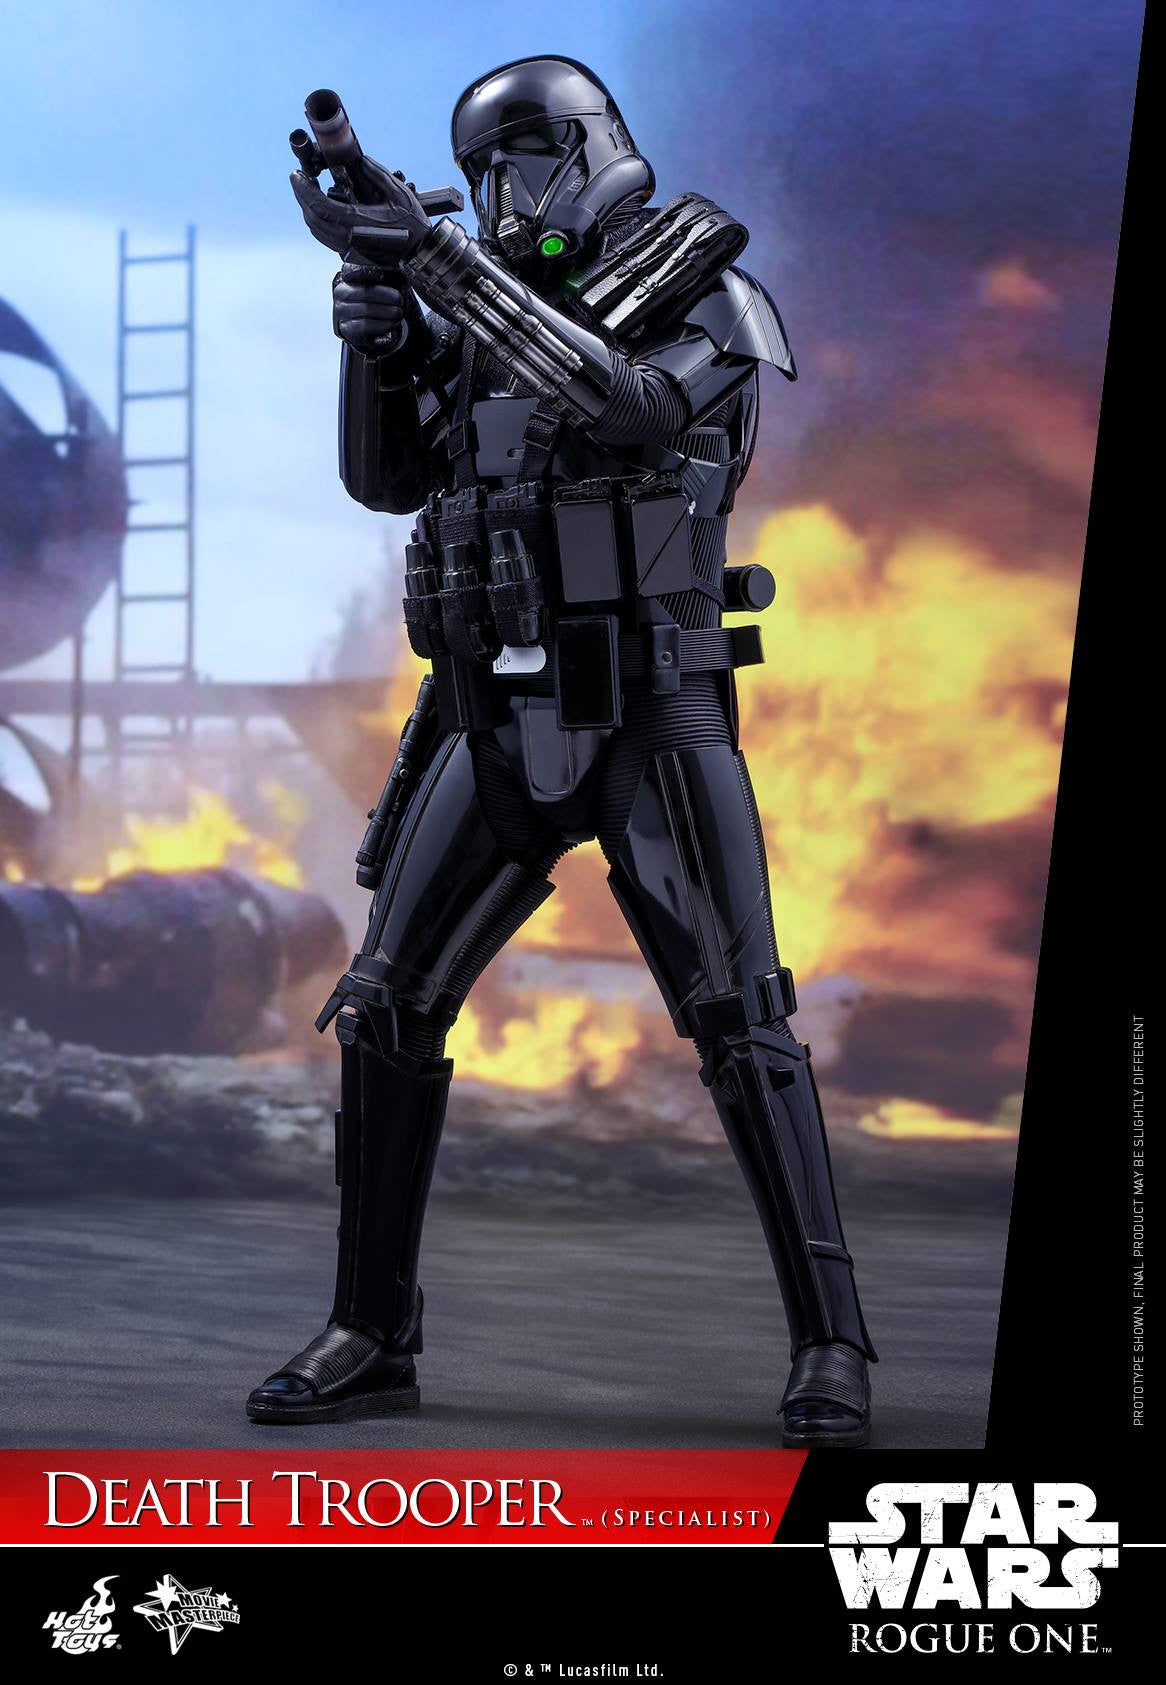 Hot Toys - MMS385 - Rogue One: A Star Wars Story - Death Trooper (Specialist) - Marvelous Toys - 1